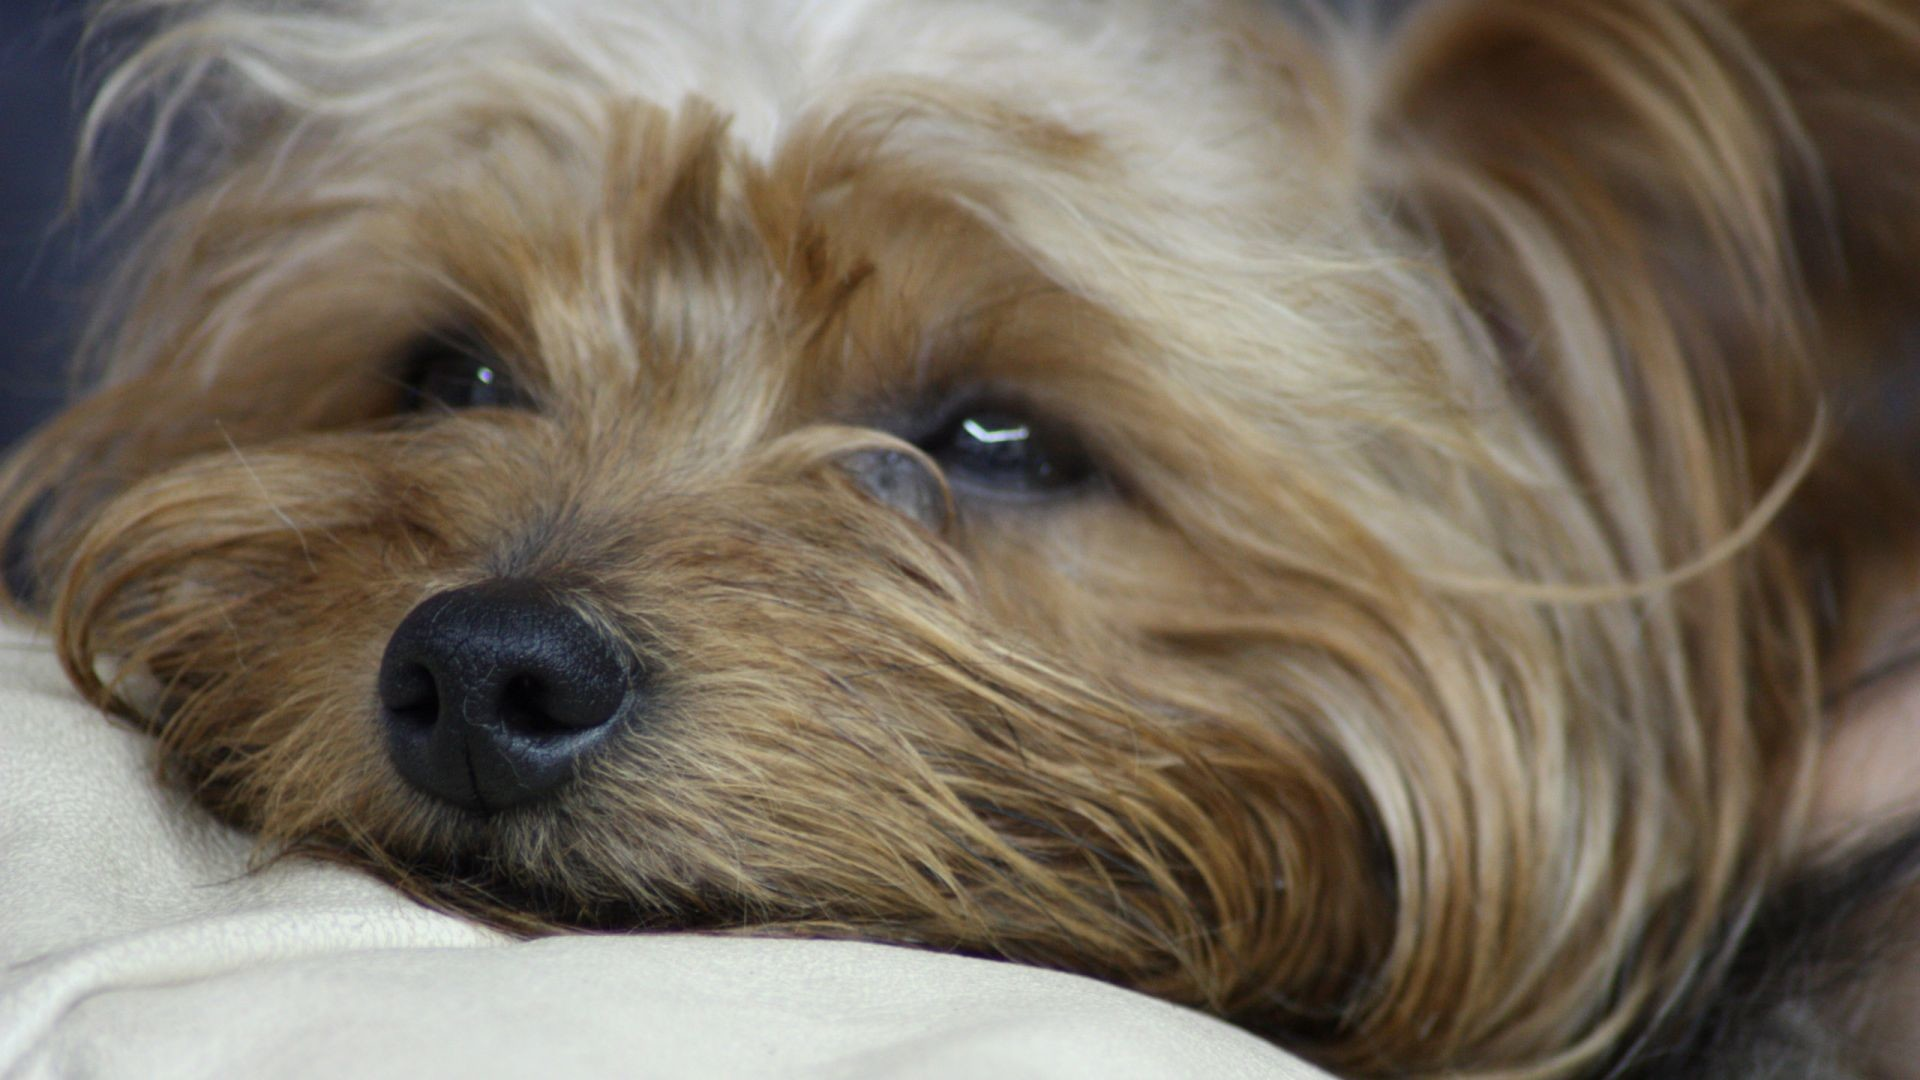 Yorkshire Terrier images